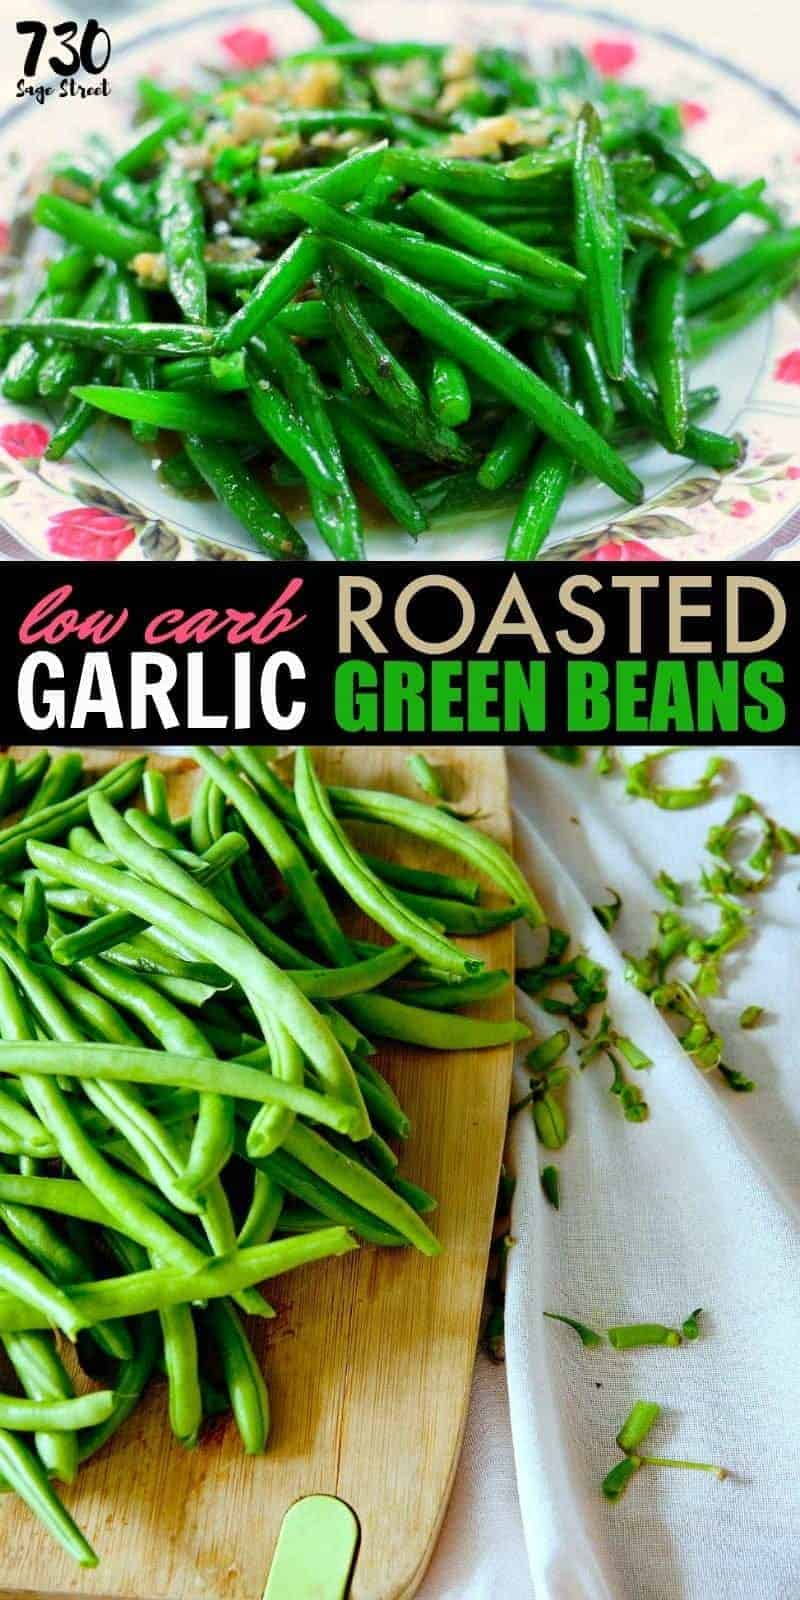 This easy garlic green beans recipe makes a delicious low carb summer side dish. #lowcarb #veggies #sidedish #keto #ketogenic #lchf #ketorecipes